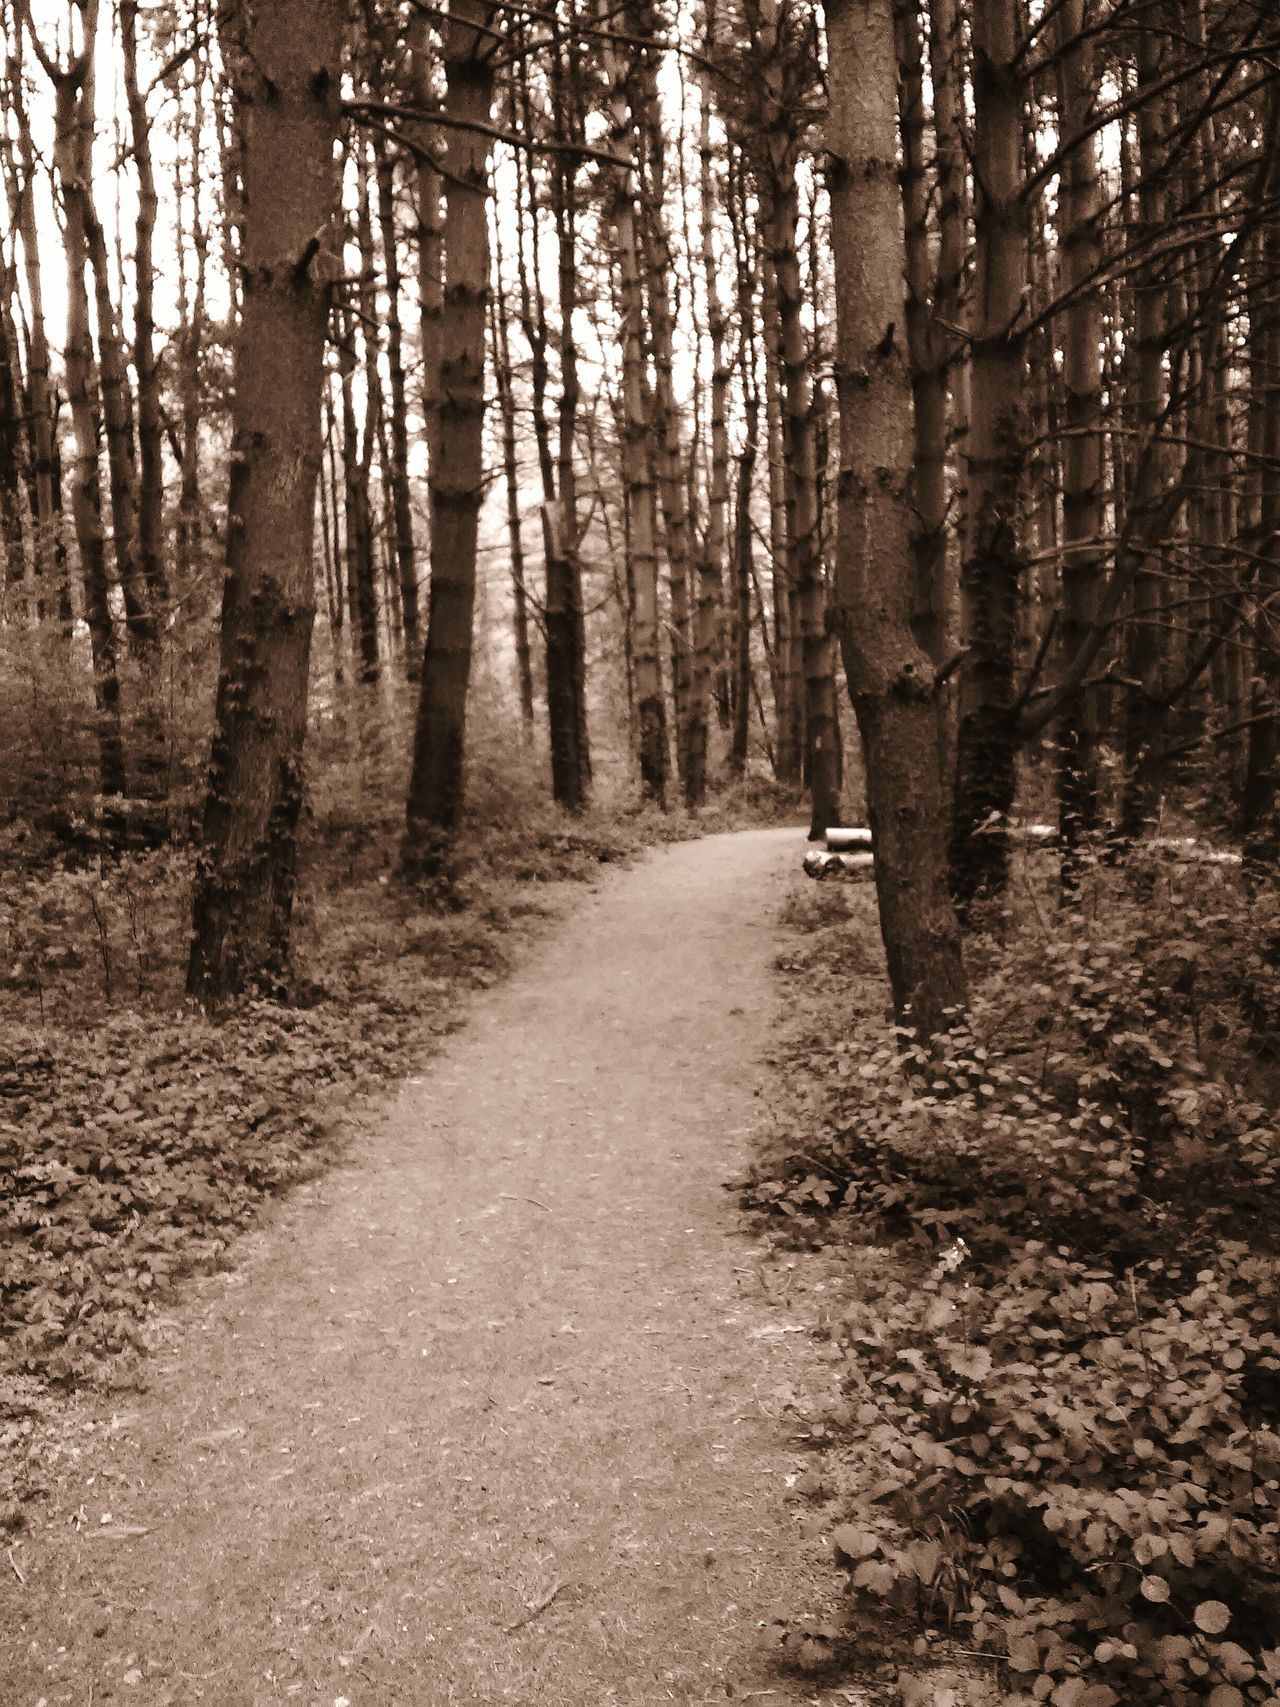 Sepia_collection Show Me Your Sepia Walking Through The Woods Looking For Freedom EyeEm Nature Lover Trees Barren Trees Take A Walk Get Outside Get Lost Somewhere